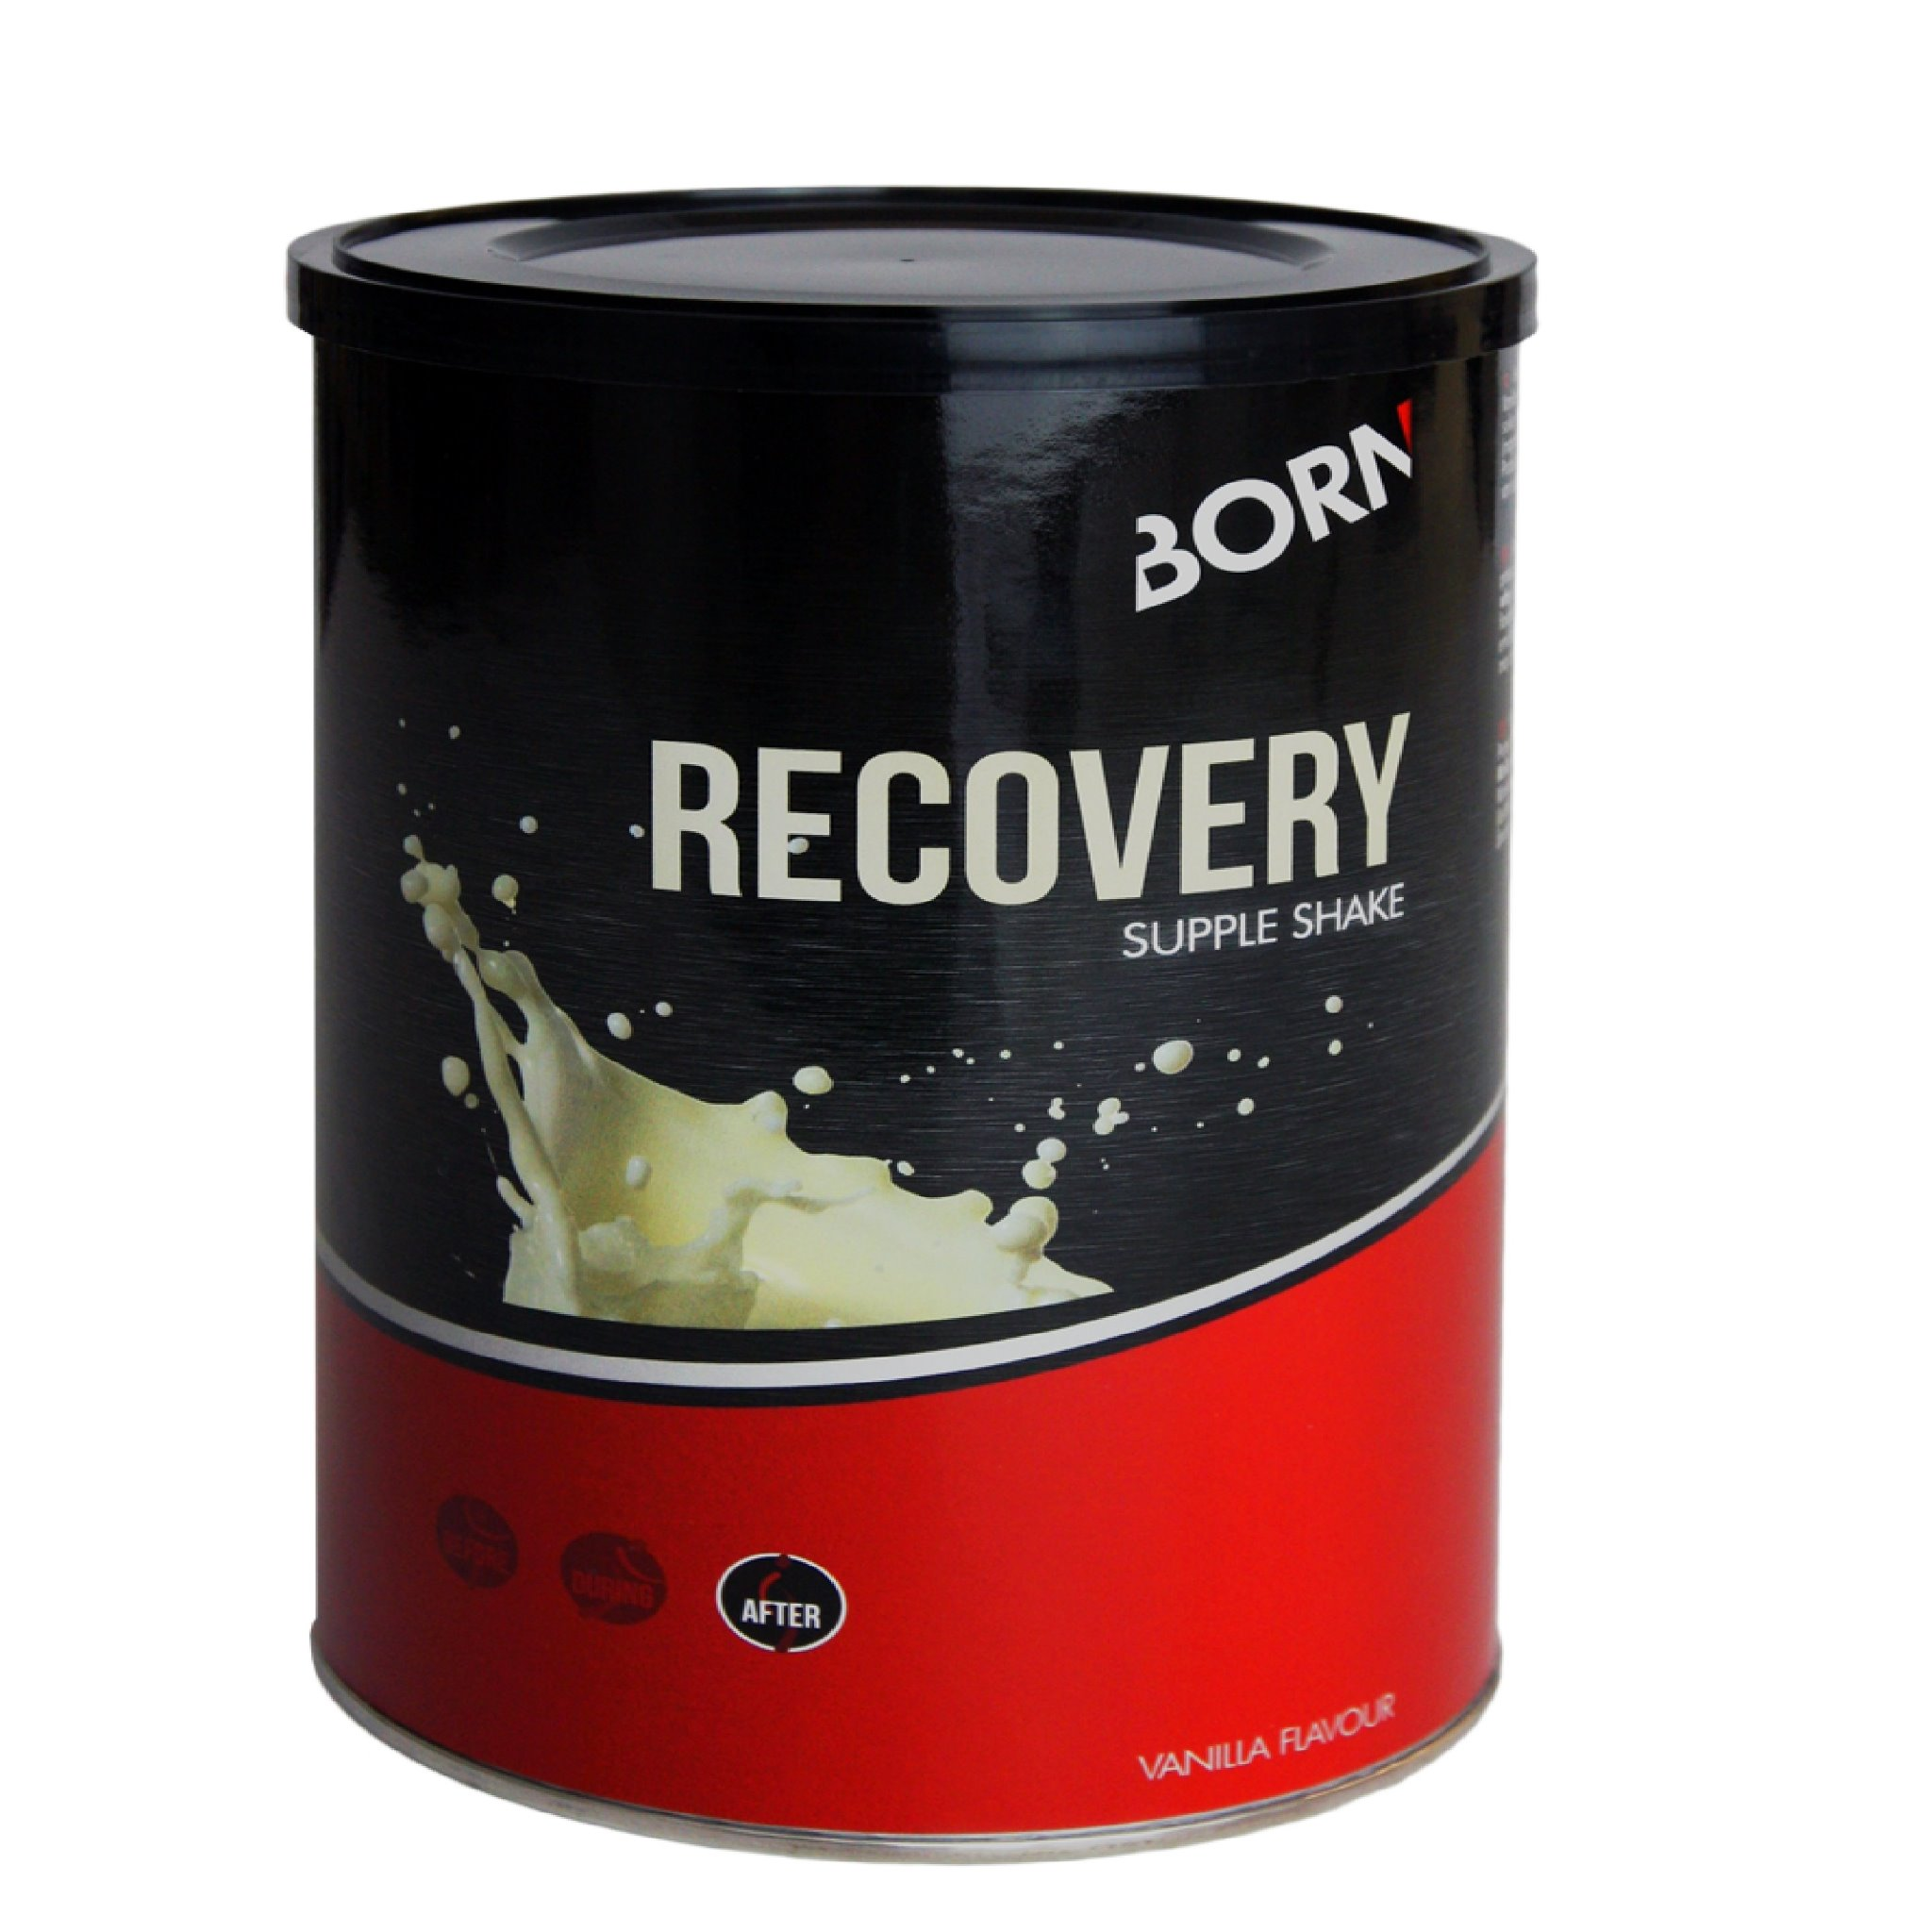 BORN Recovery Shake Can (450g Powder)